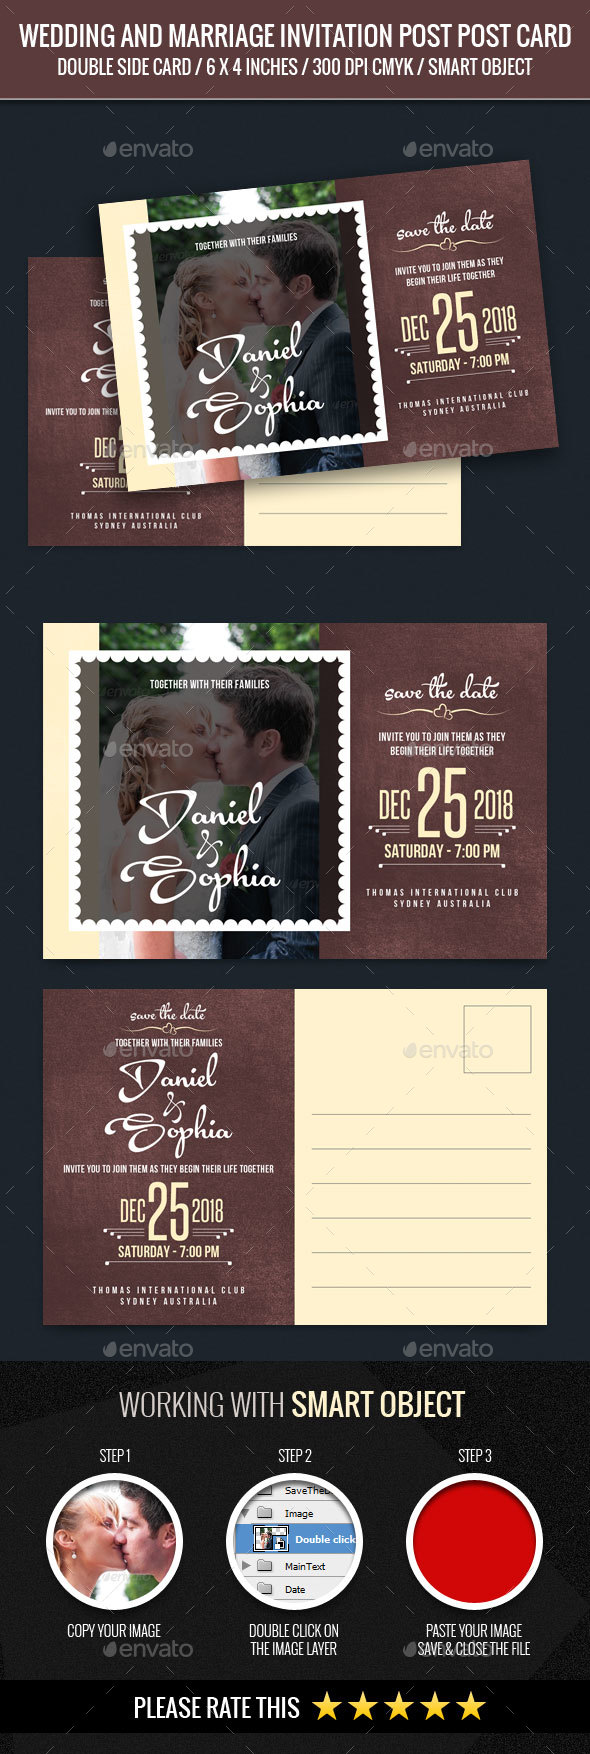 Wedding and Marriage Invitation Post Card